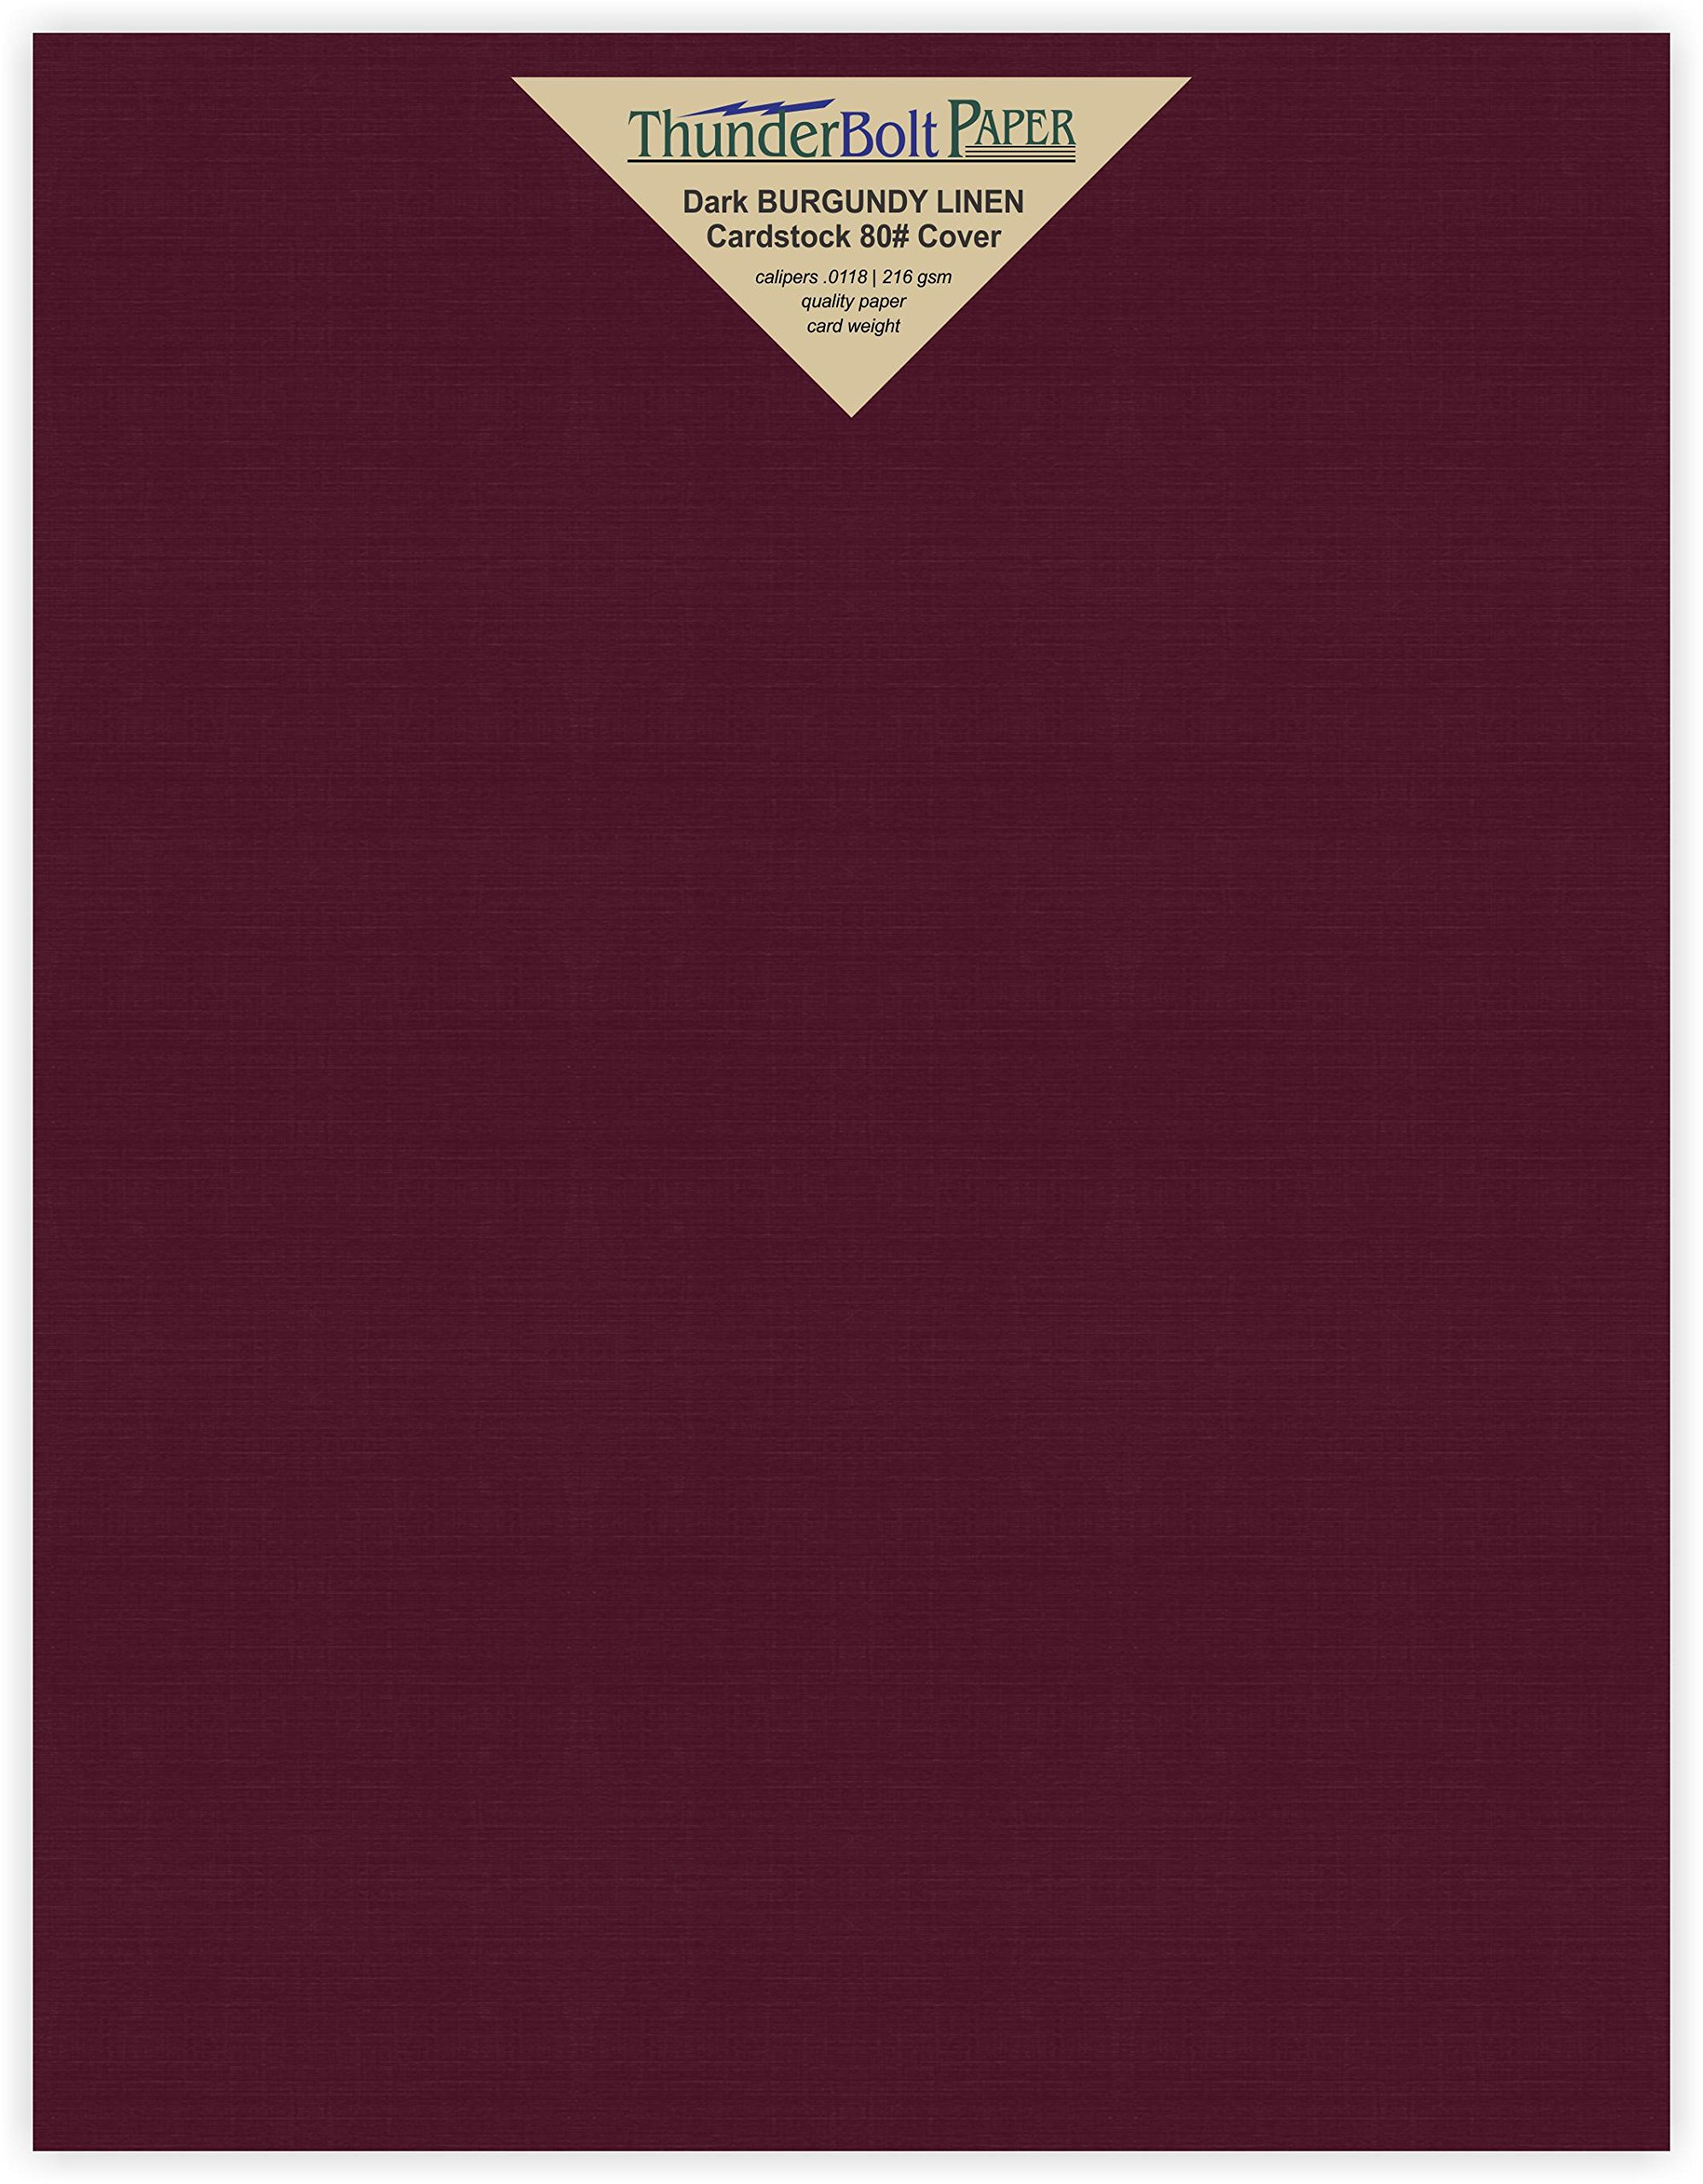 25 Dark Burgundy Linen 80# Cover Paper Sheets - 8.5X11 Inches Standard Letter|Flyer Size - 80 lb/pound Card Weight - Fine Linen Textured Finish - Deep Dye Quality Cardstock by ThunderBolt Paper